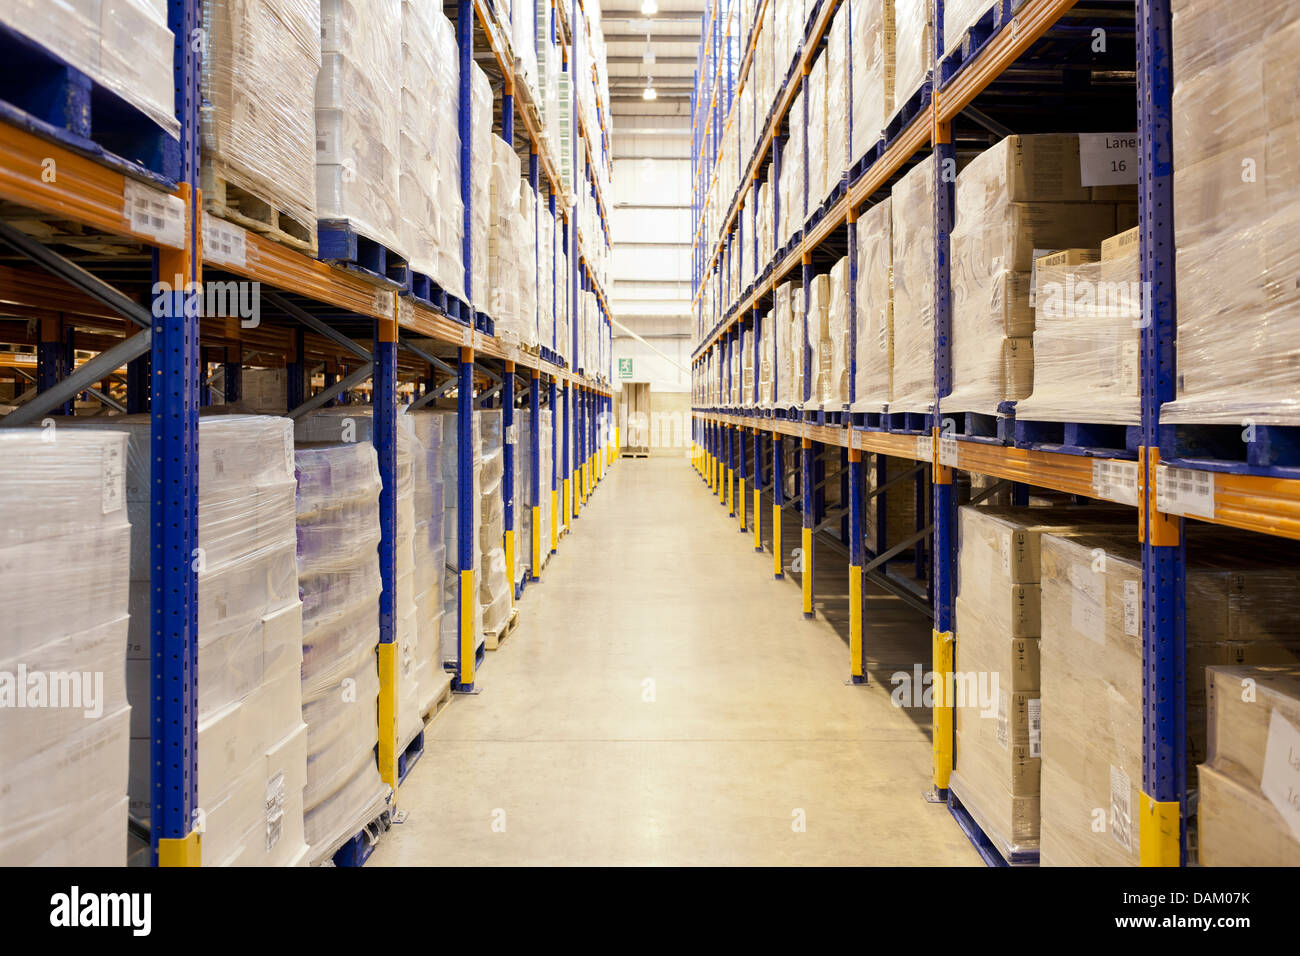 Stacks of boxes in aisle in warehouse - Stock Image